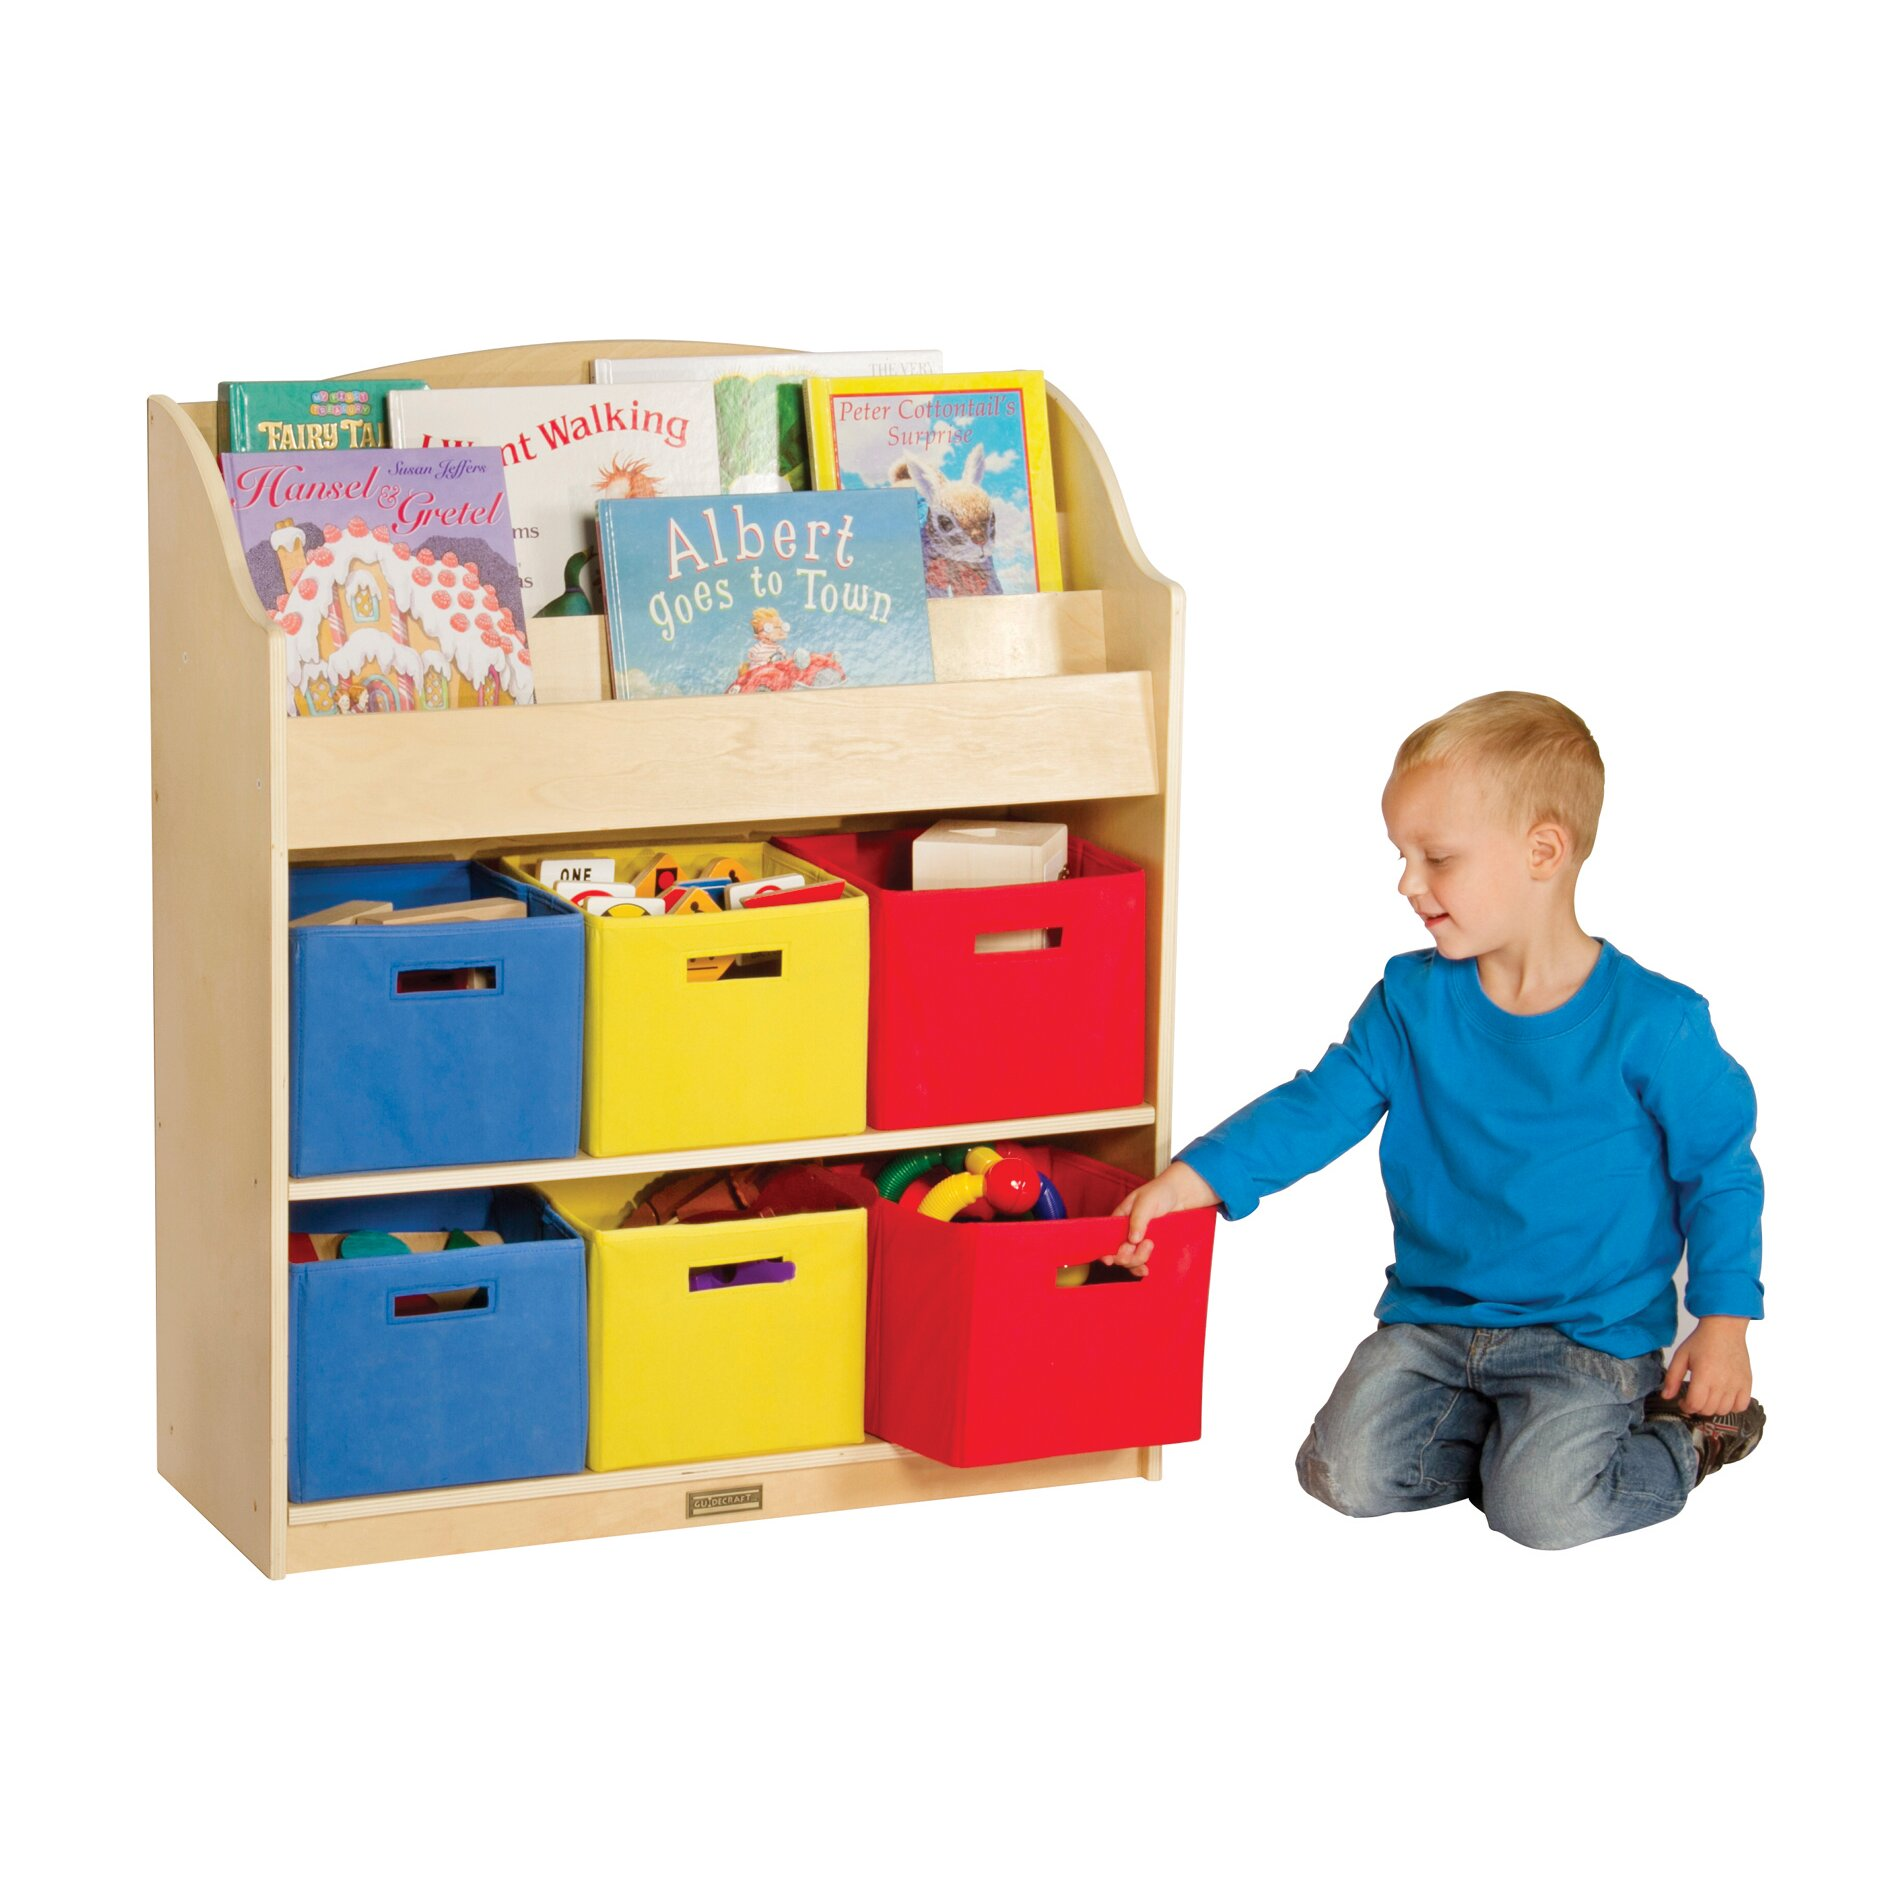 Guidecraft Classroom Furniture Toy Organizer Reviews Wayfair